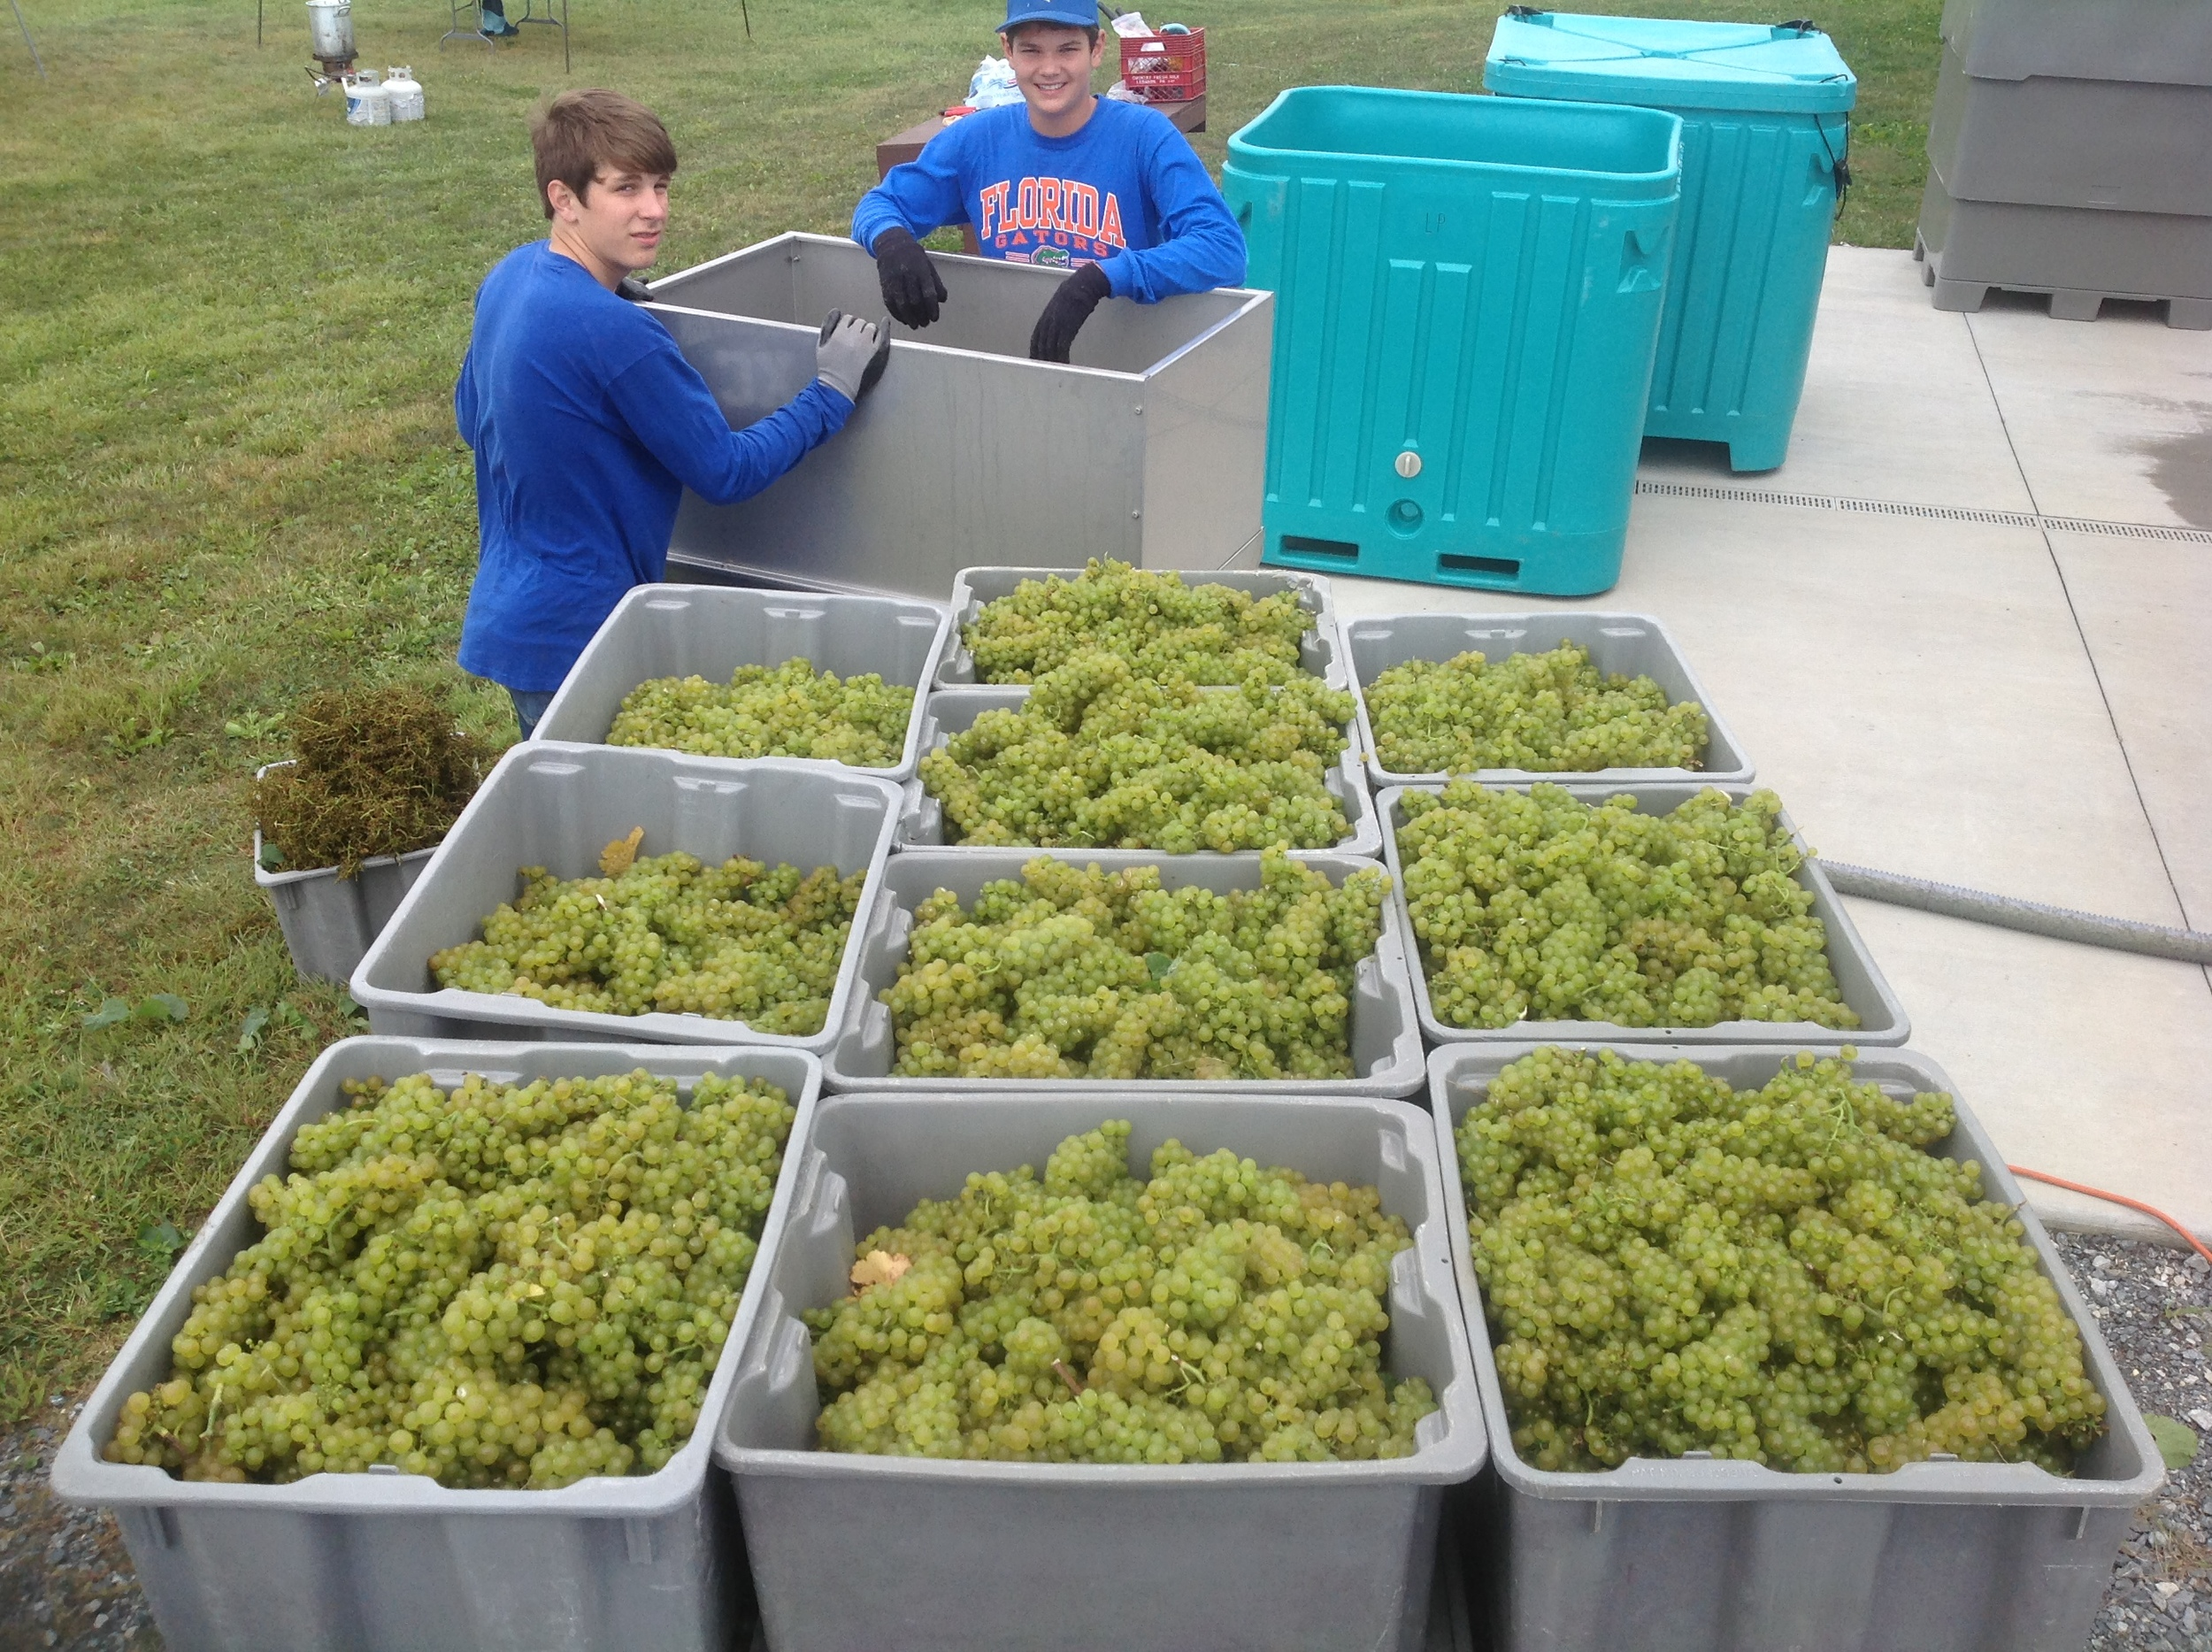 harvest grapes.JPG